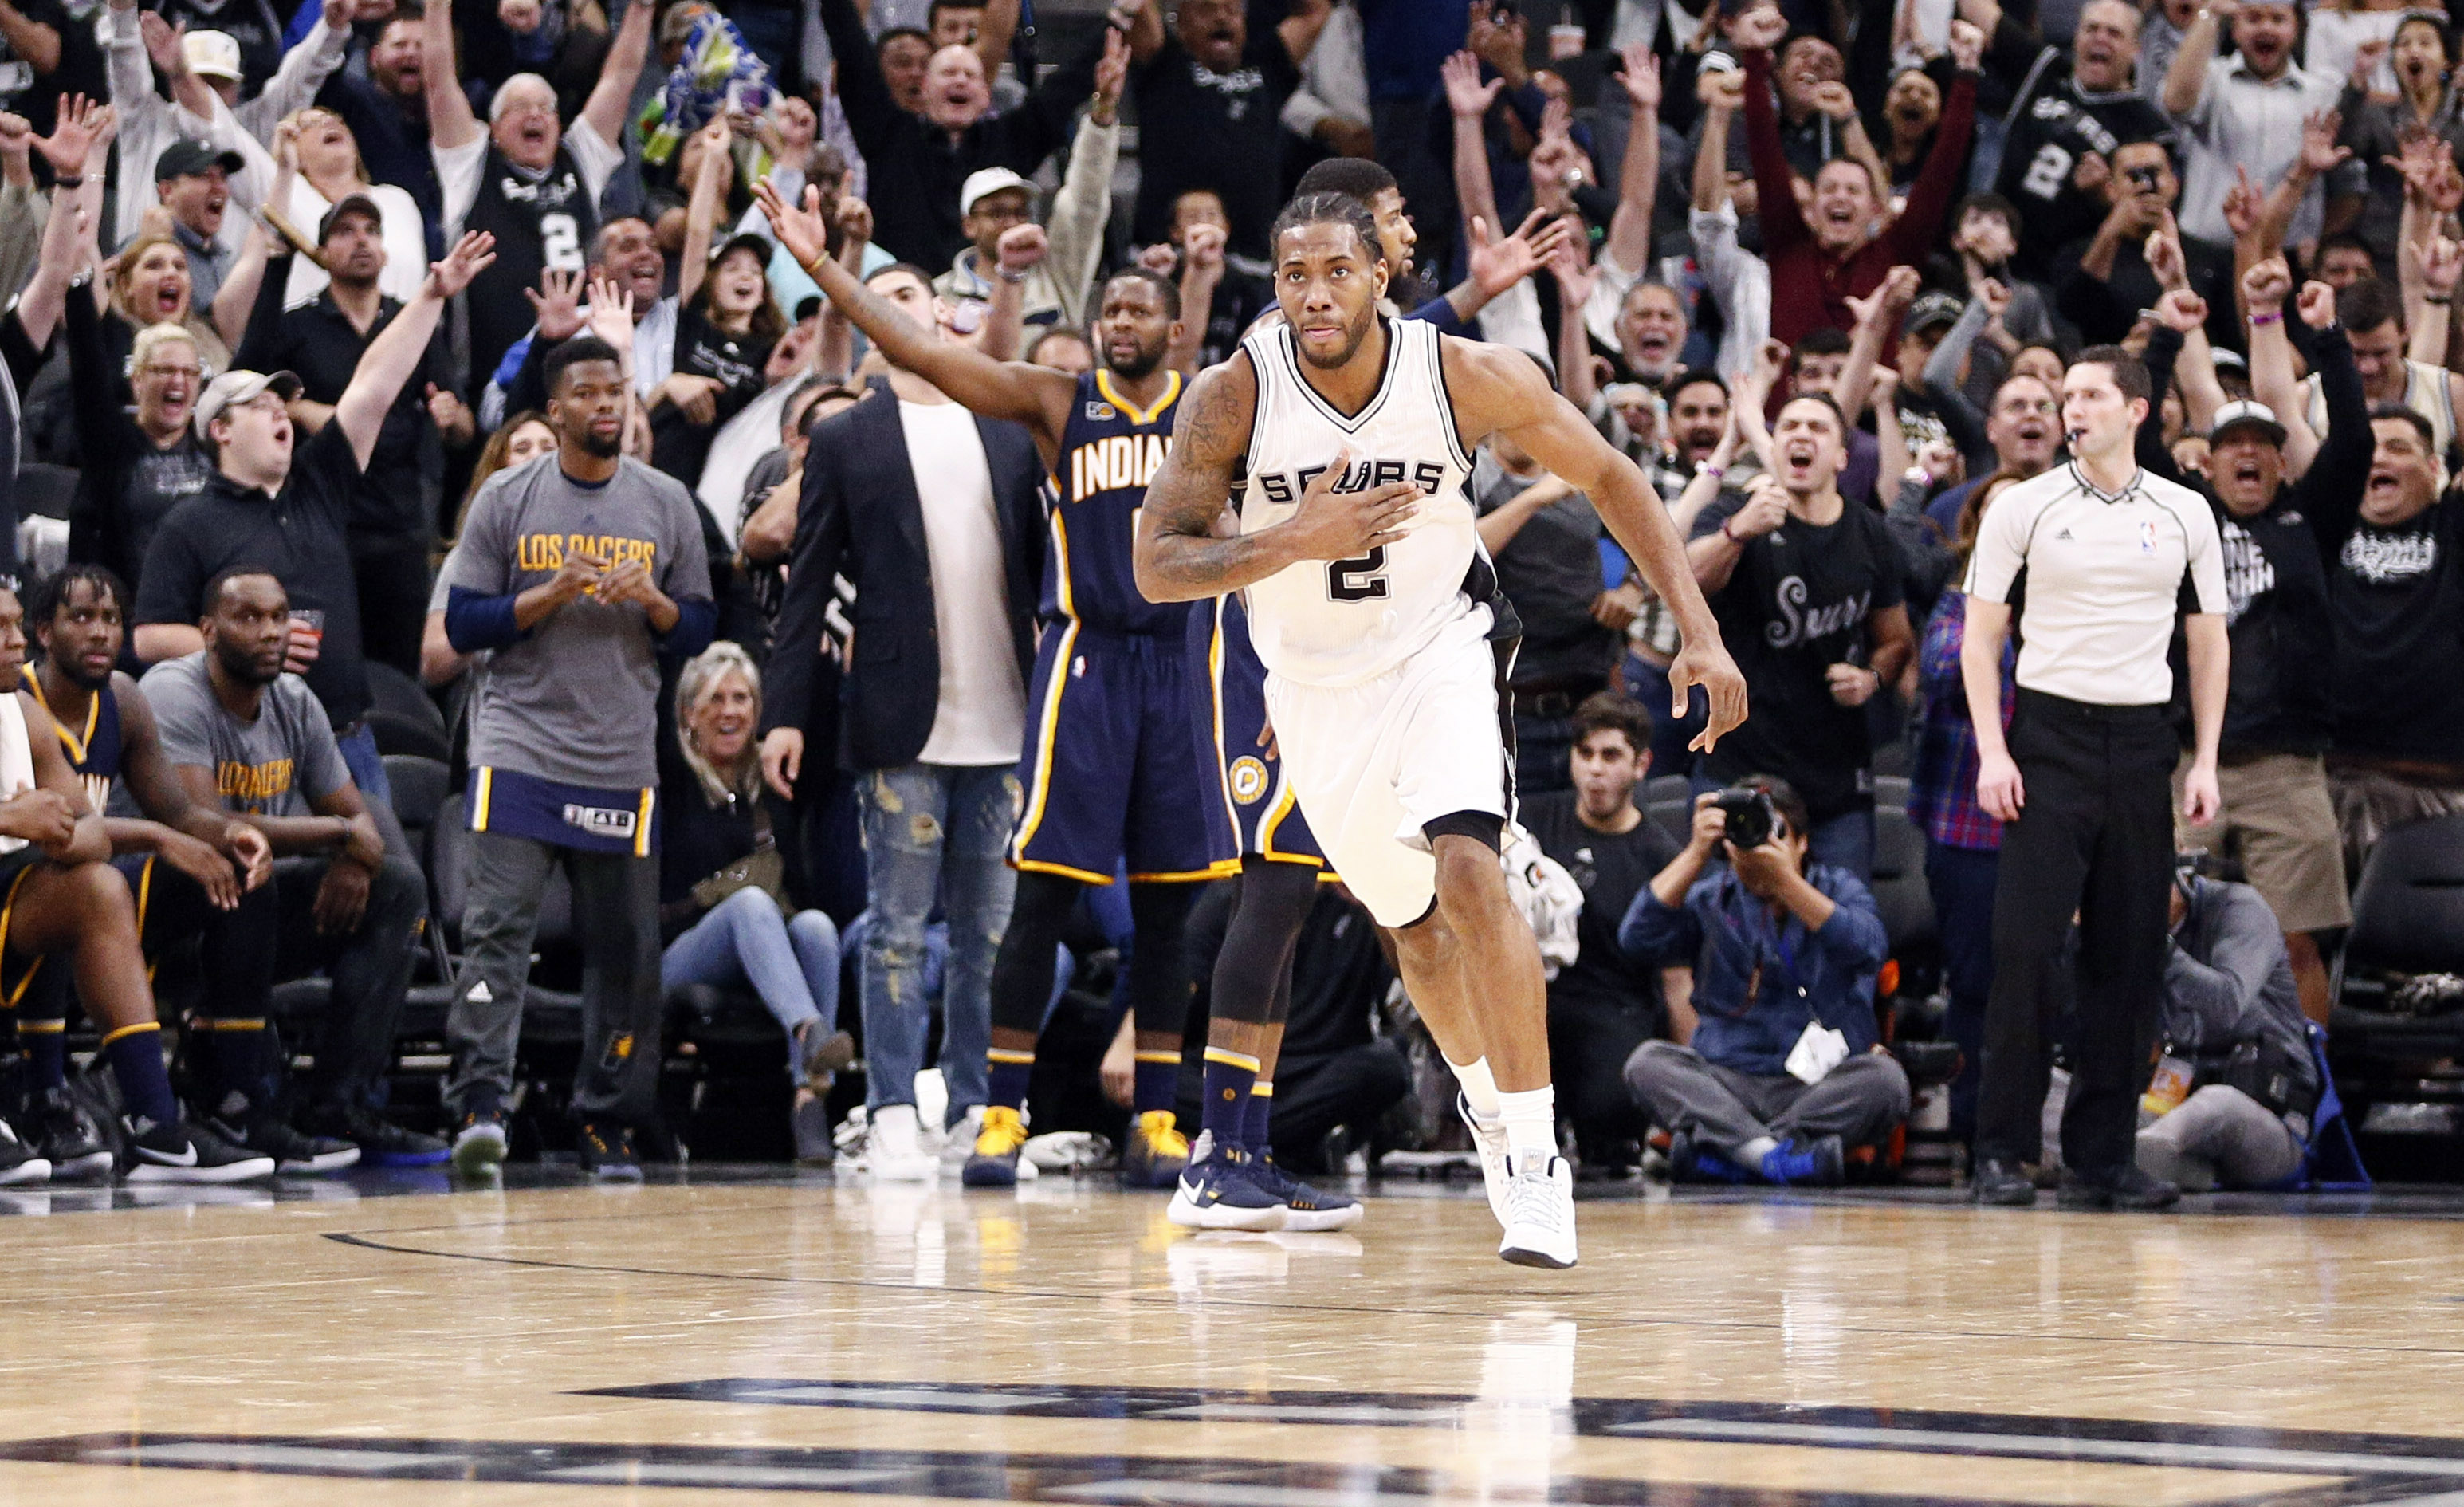 nba daily fantasy projections Here are the best daily fantasy sport (dfs) lineup optimizers for draftkings and  fanduel for nfl, nba, mlb, nhl and more  again, you'll need to sign up to  use their projections for a money-making lineup, but it comes with.